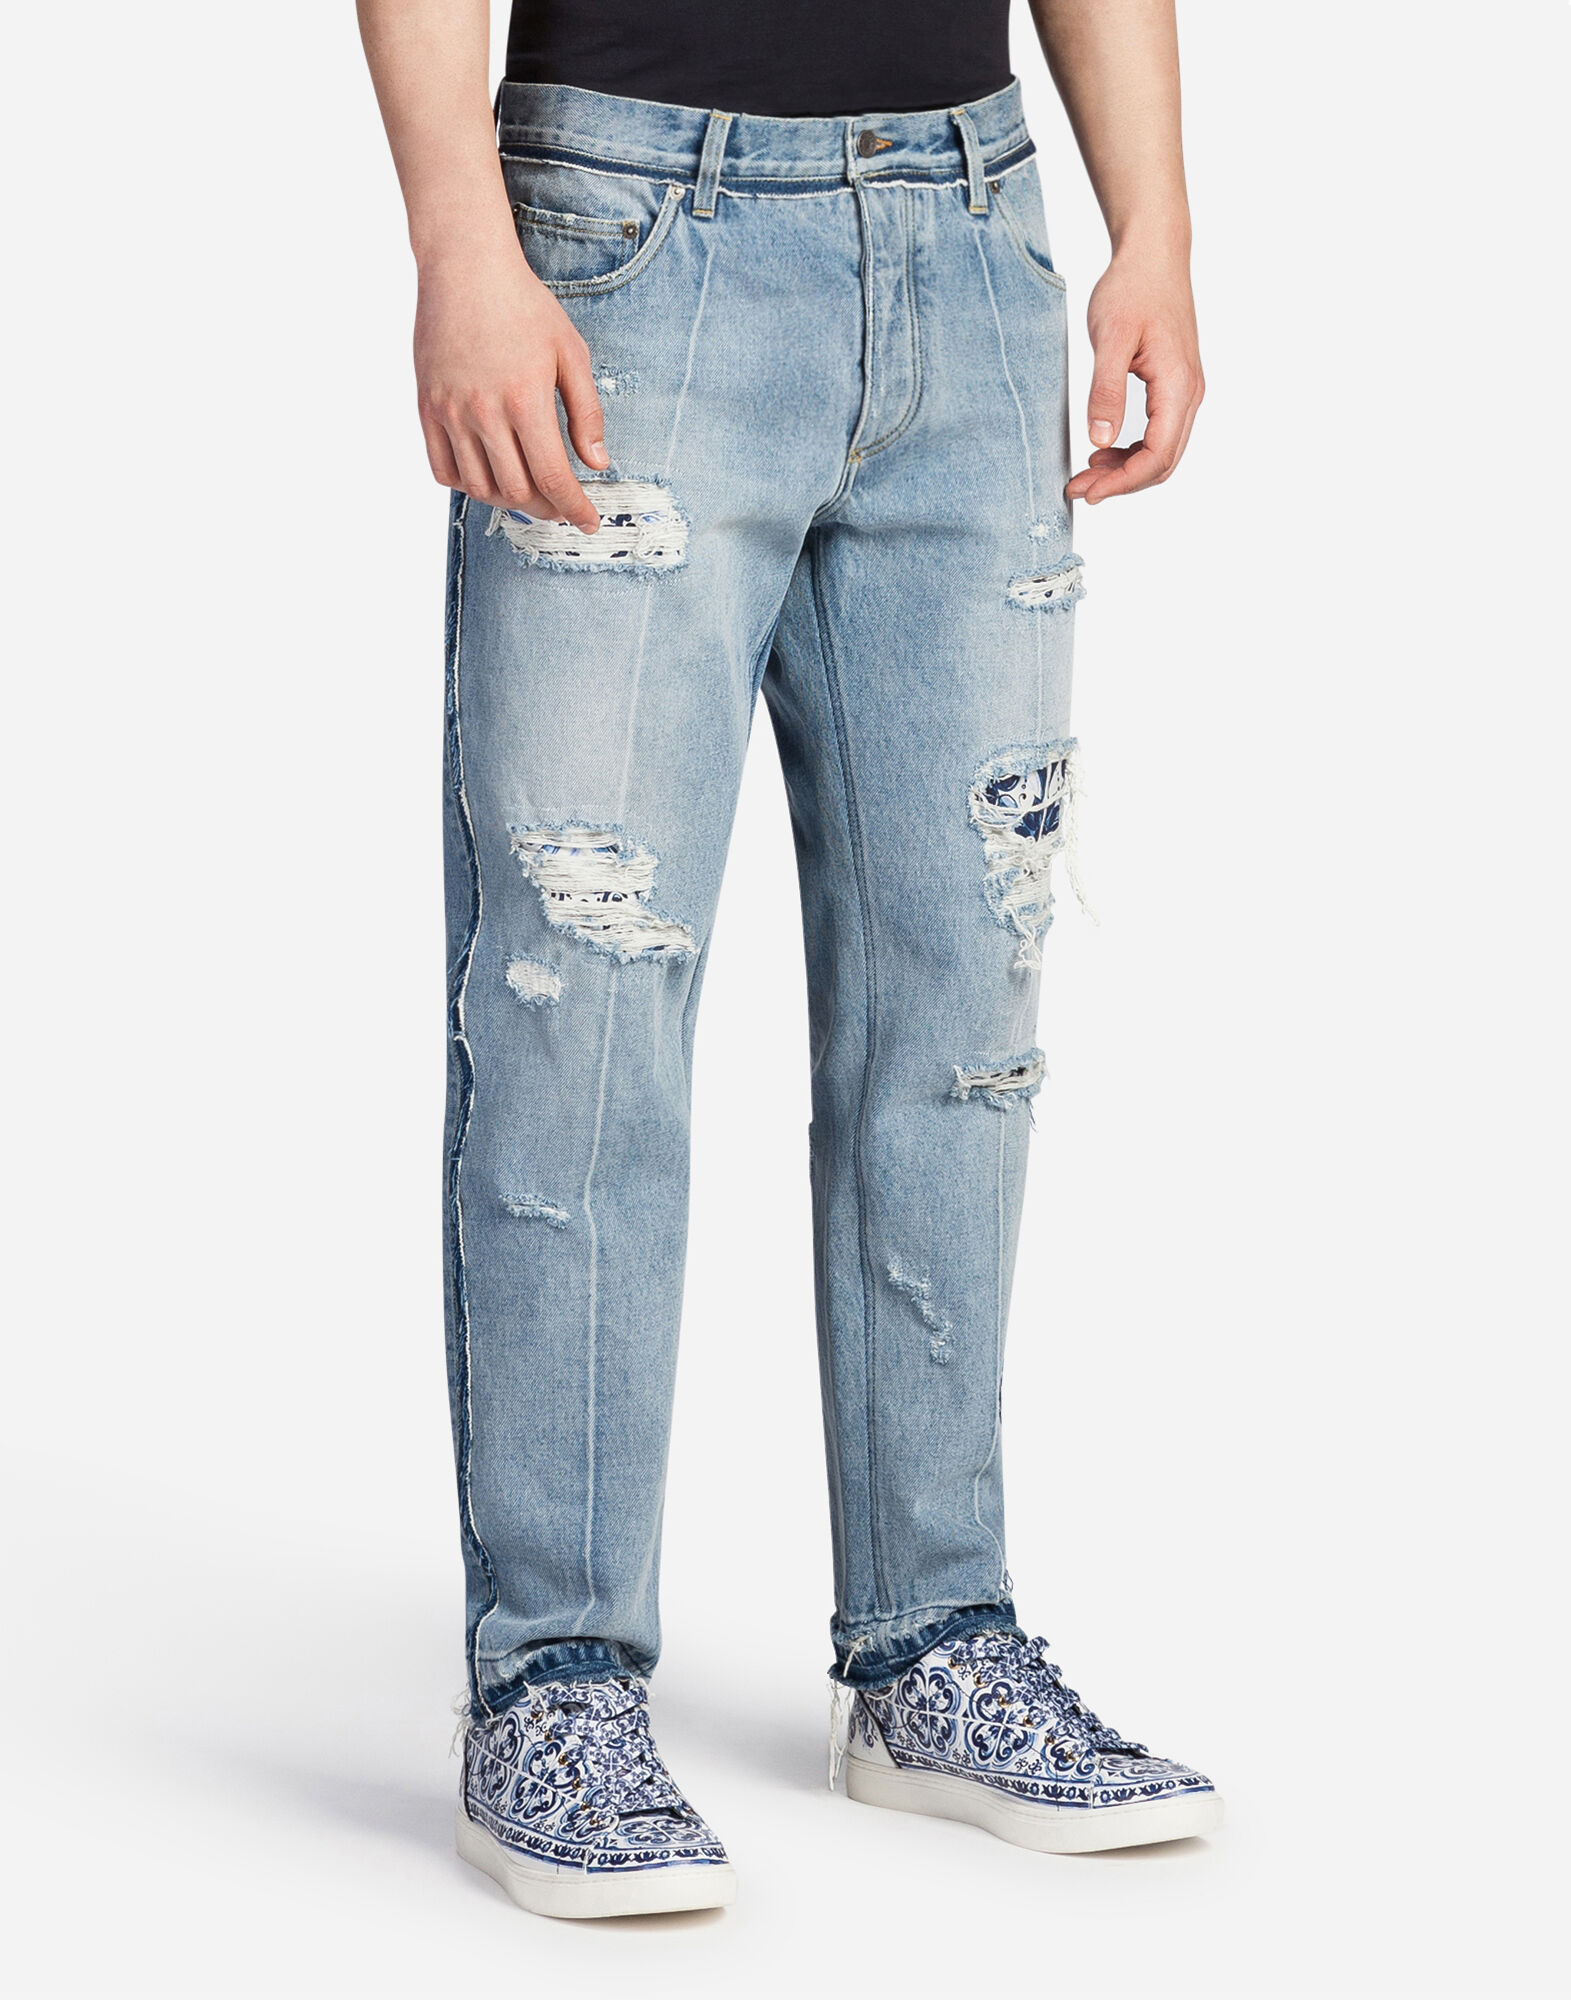 OVERSIZED FIT JEANS WITH TEARS AND ABRASIONS